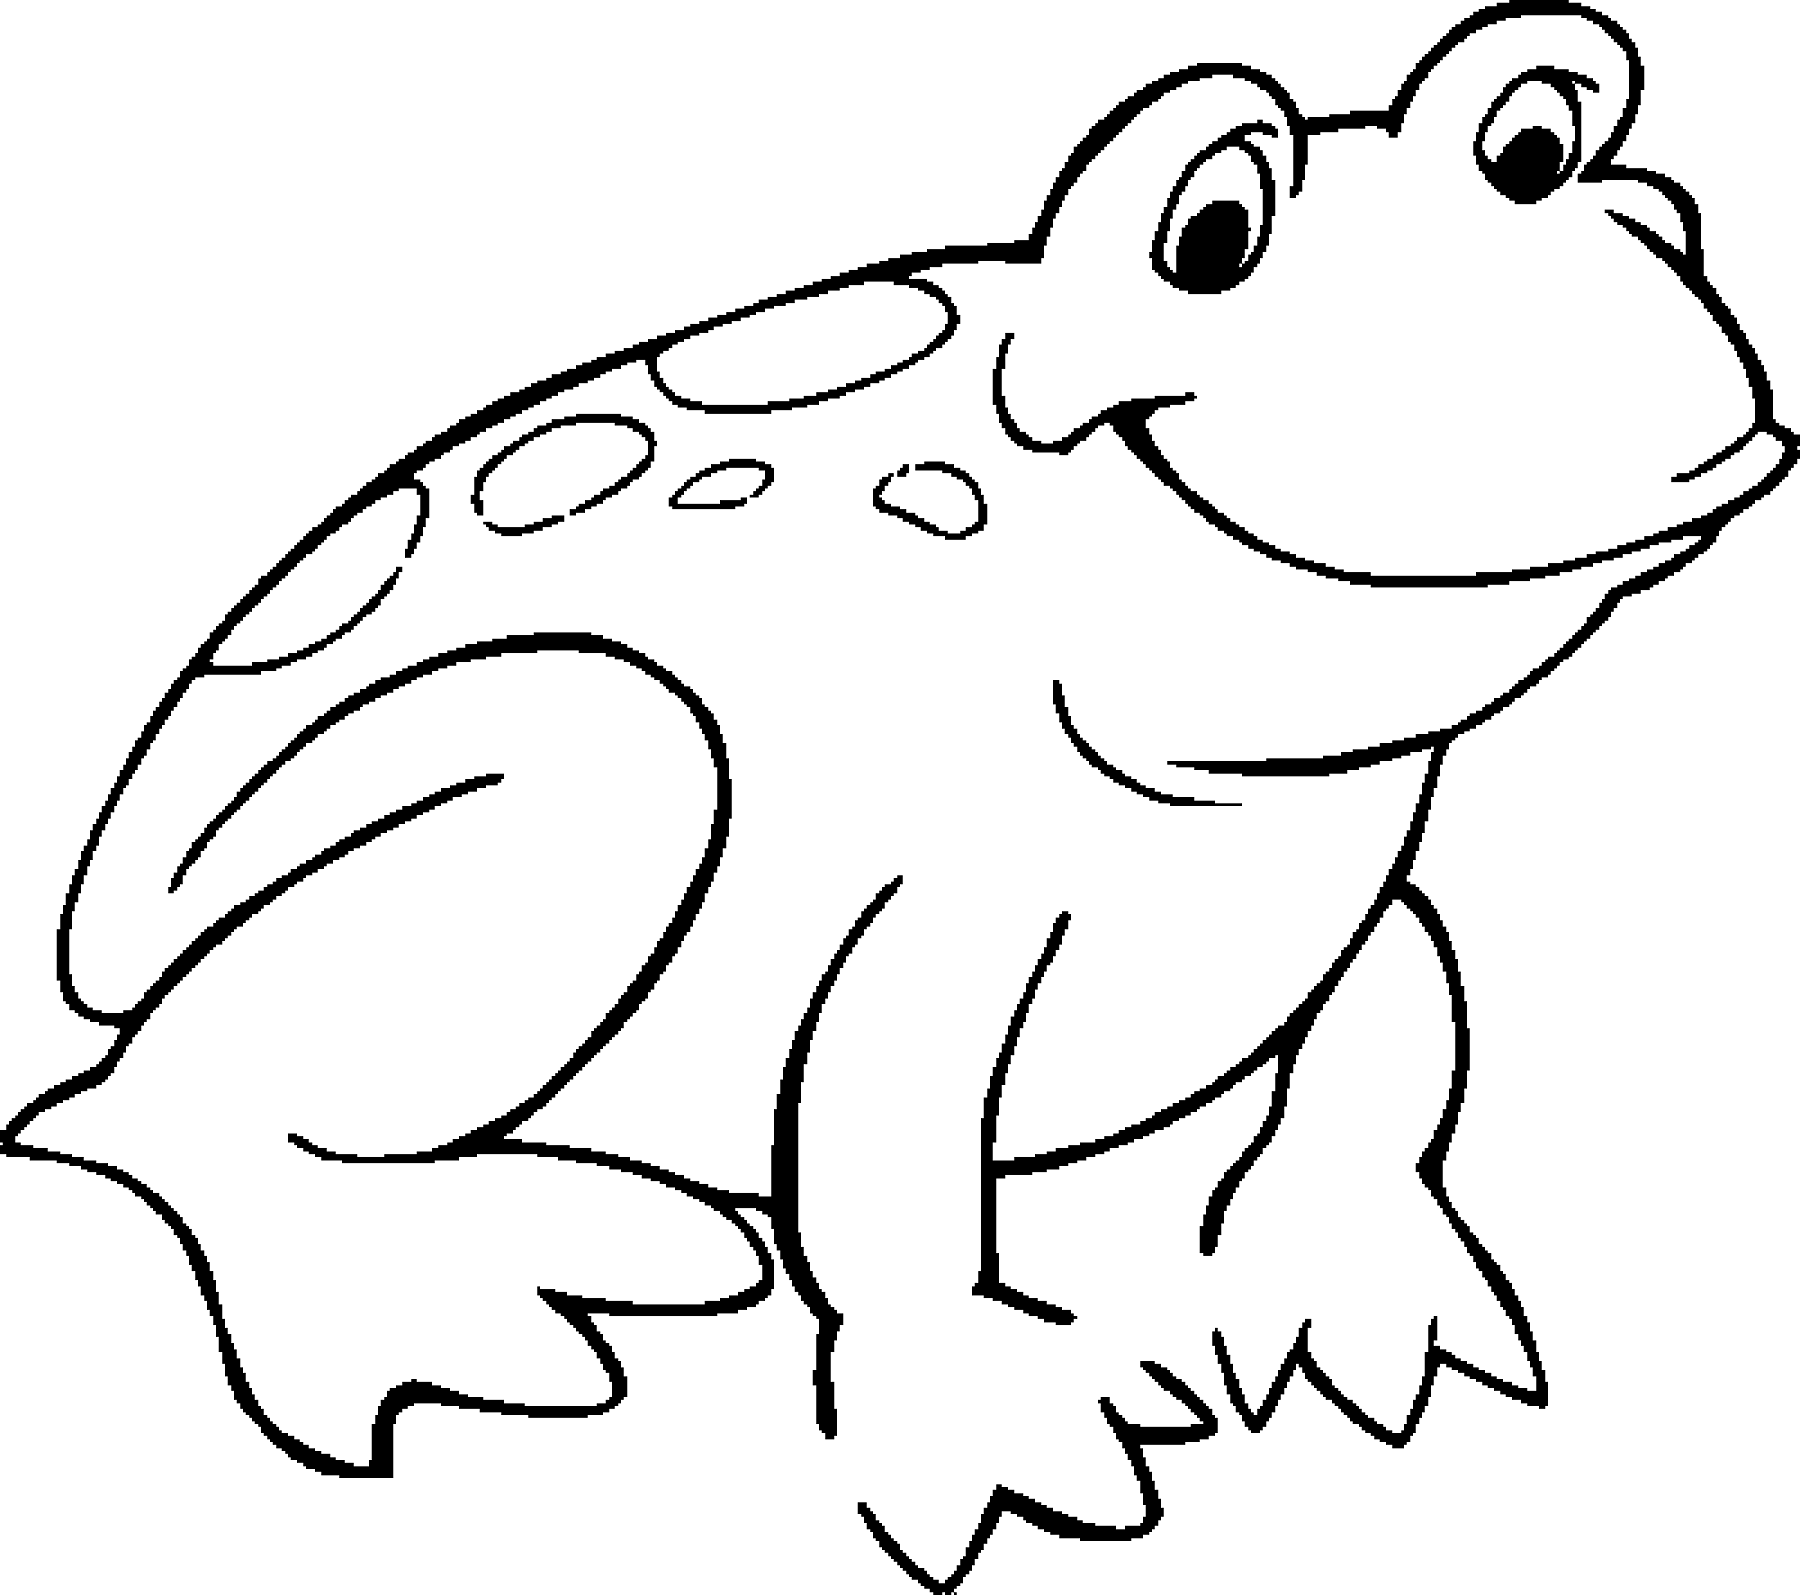 Frog Color Sheet for Kids Animal coloring pages, Frog